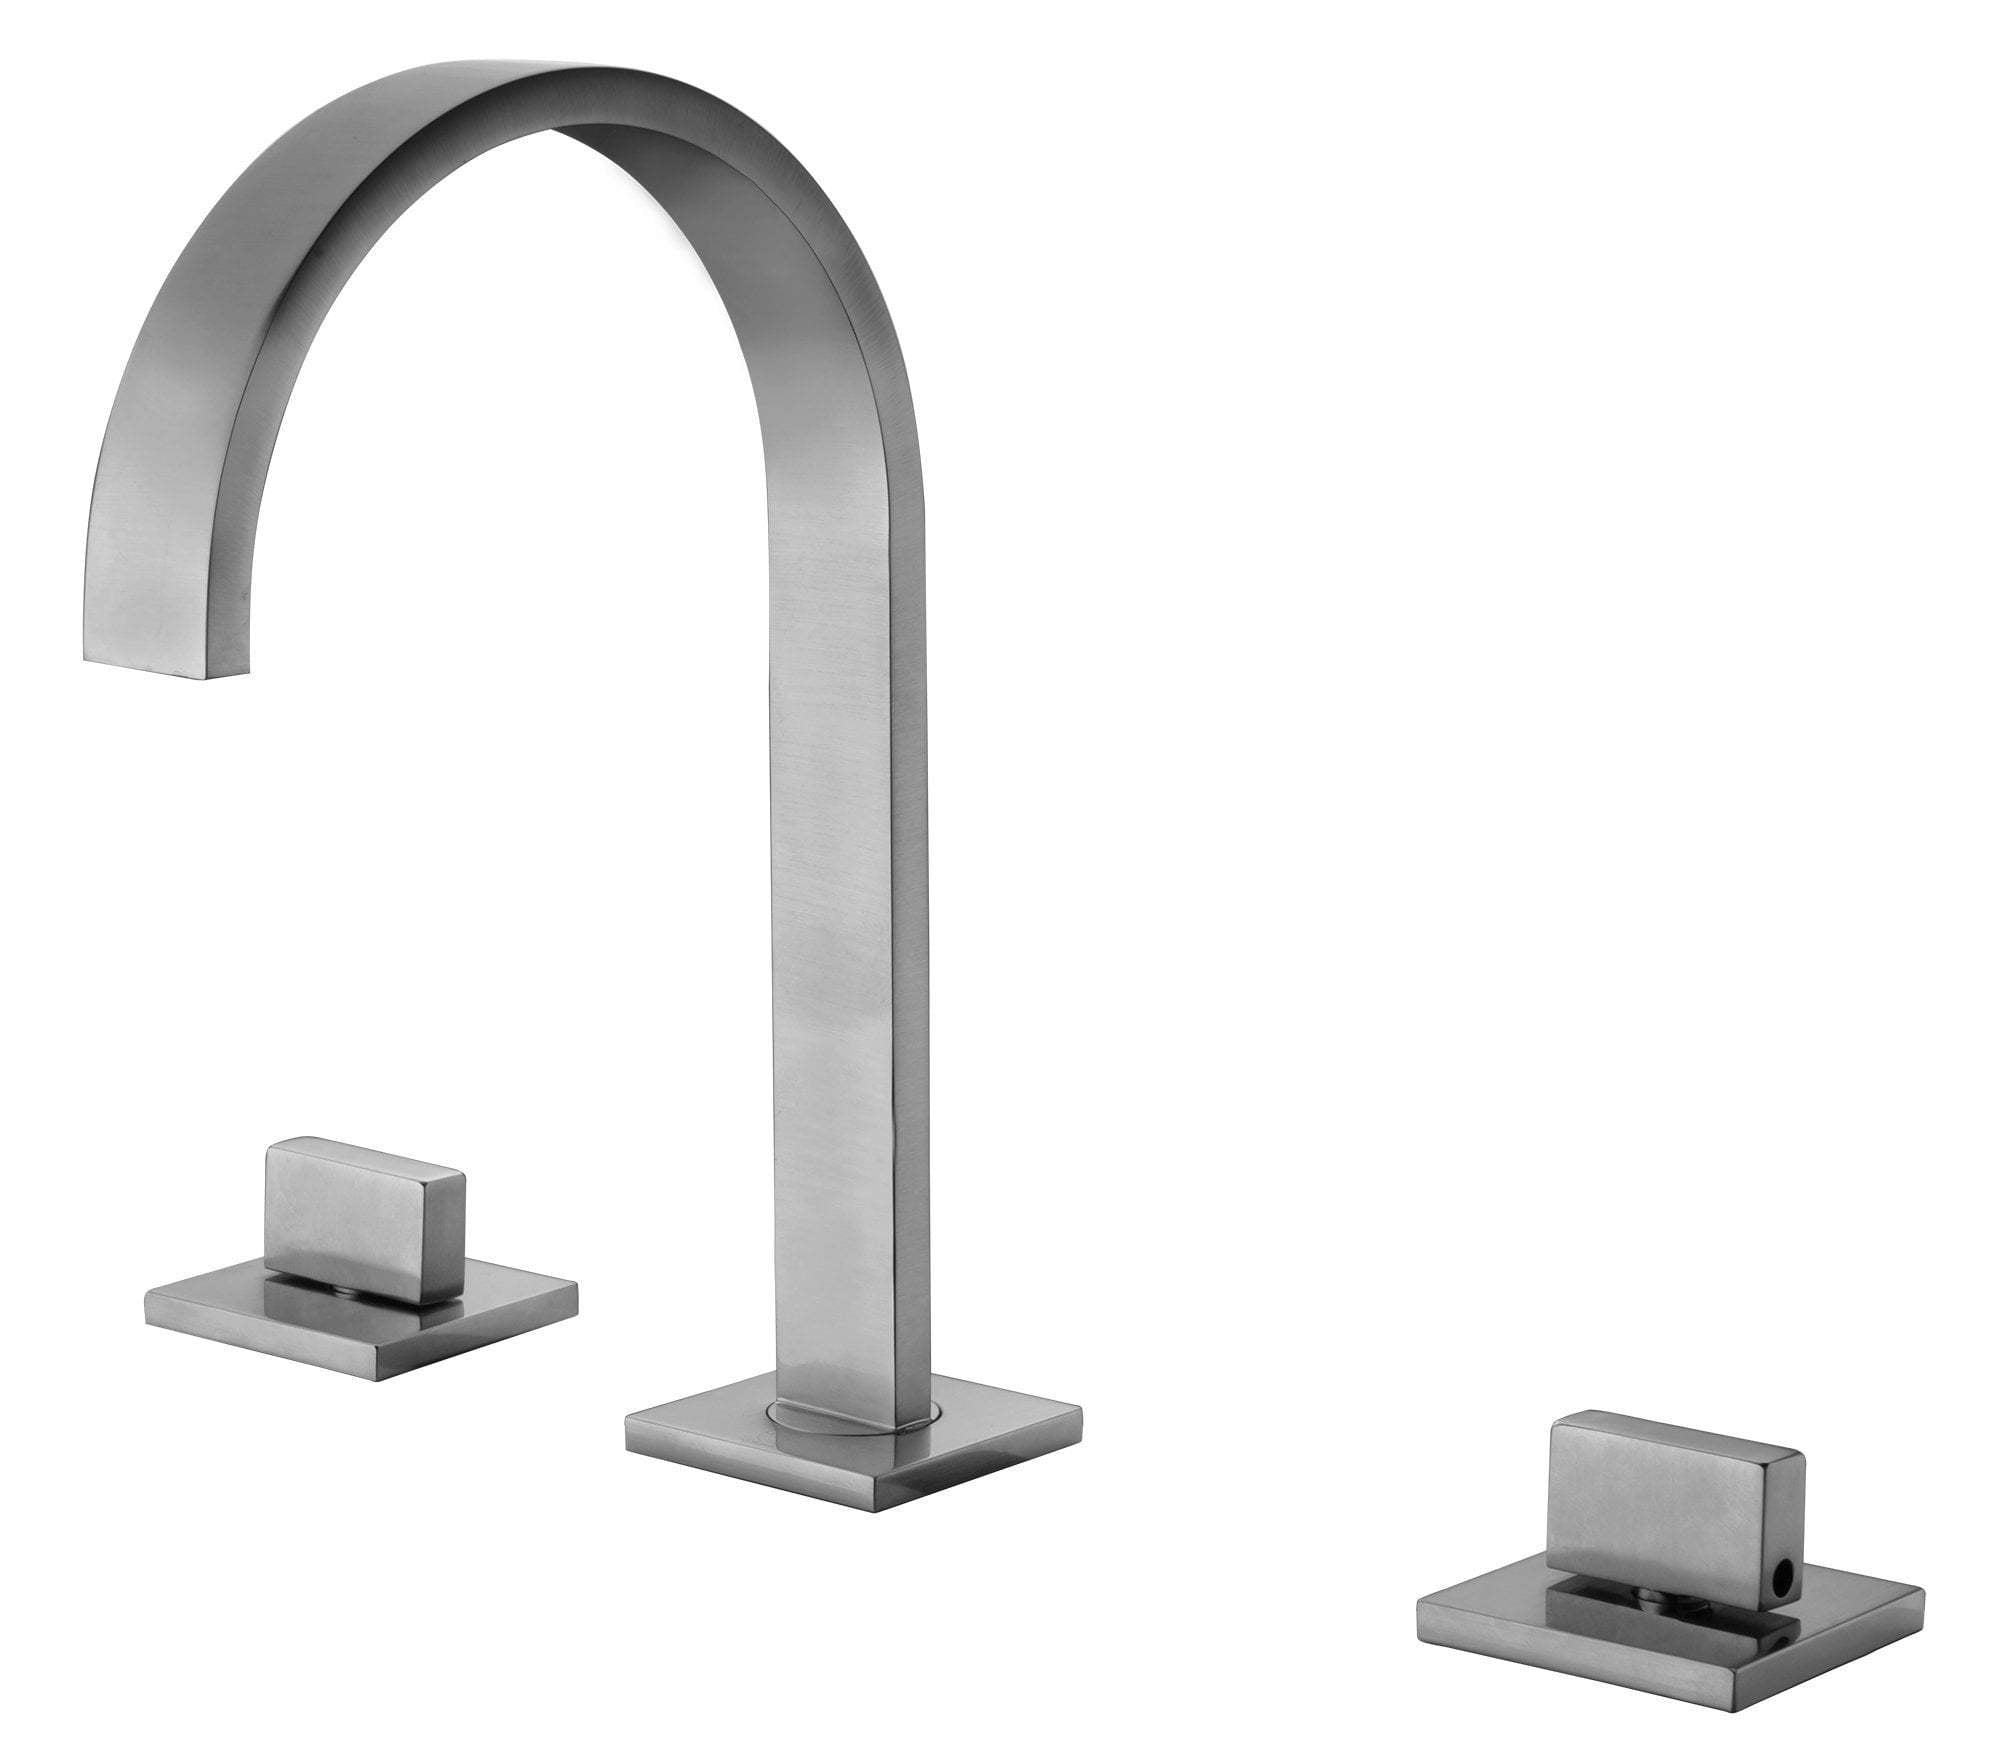 Brushed Nickel Gooseneck Widespread Bathroom Faucet